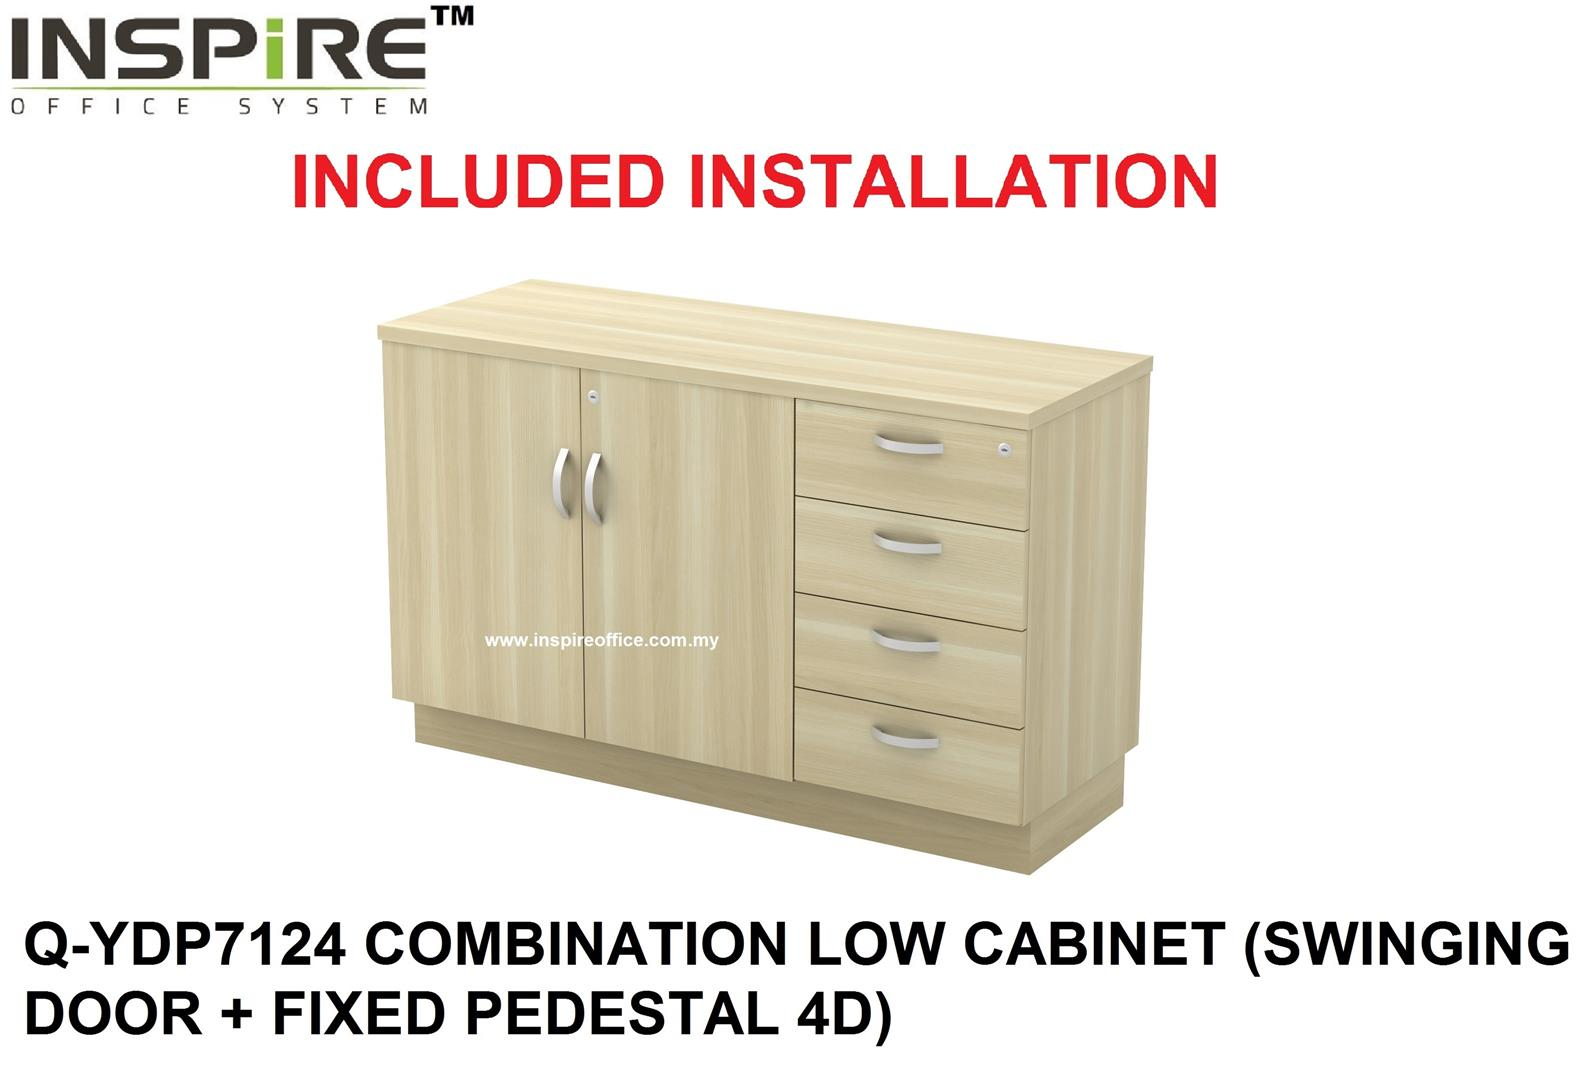 EXORA SERIES Q-YDP7124 LOW CABINET (SWINGING DOOR + FIXED PEDESTAL 4D)